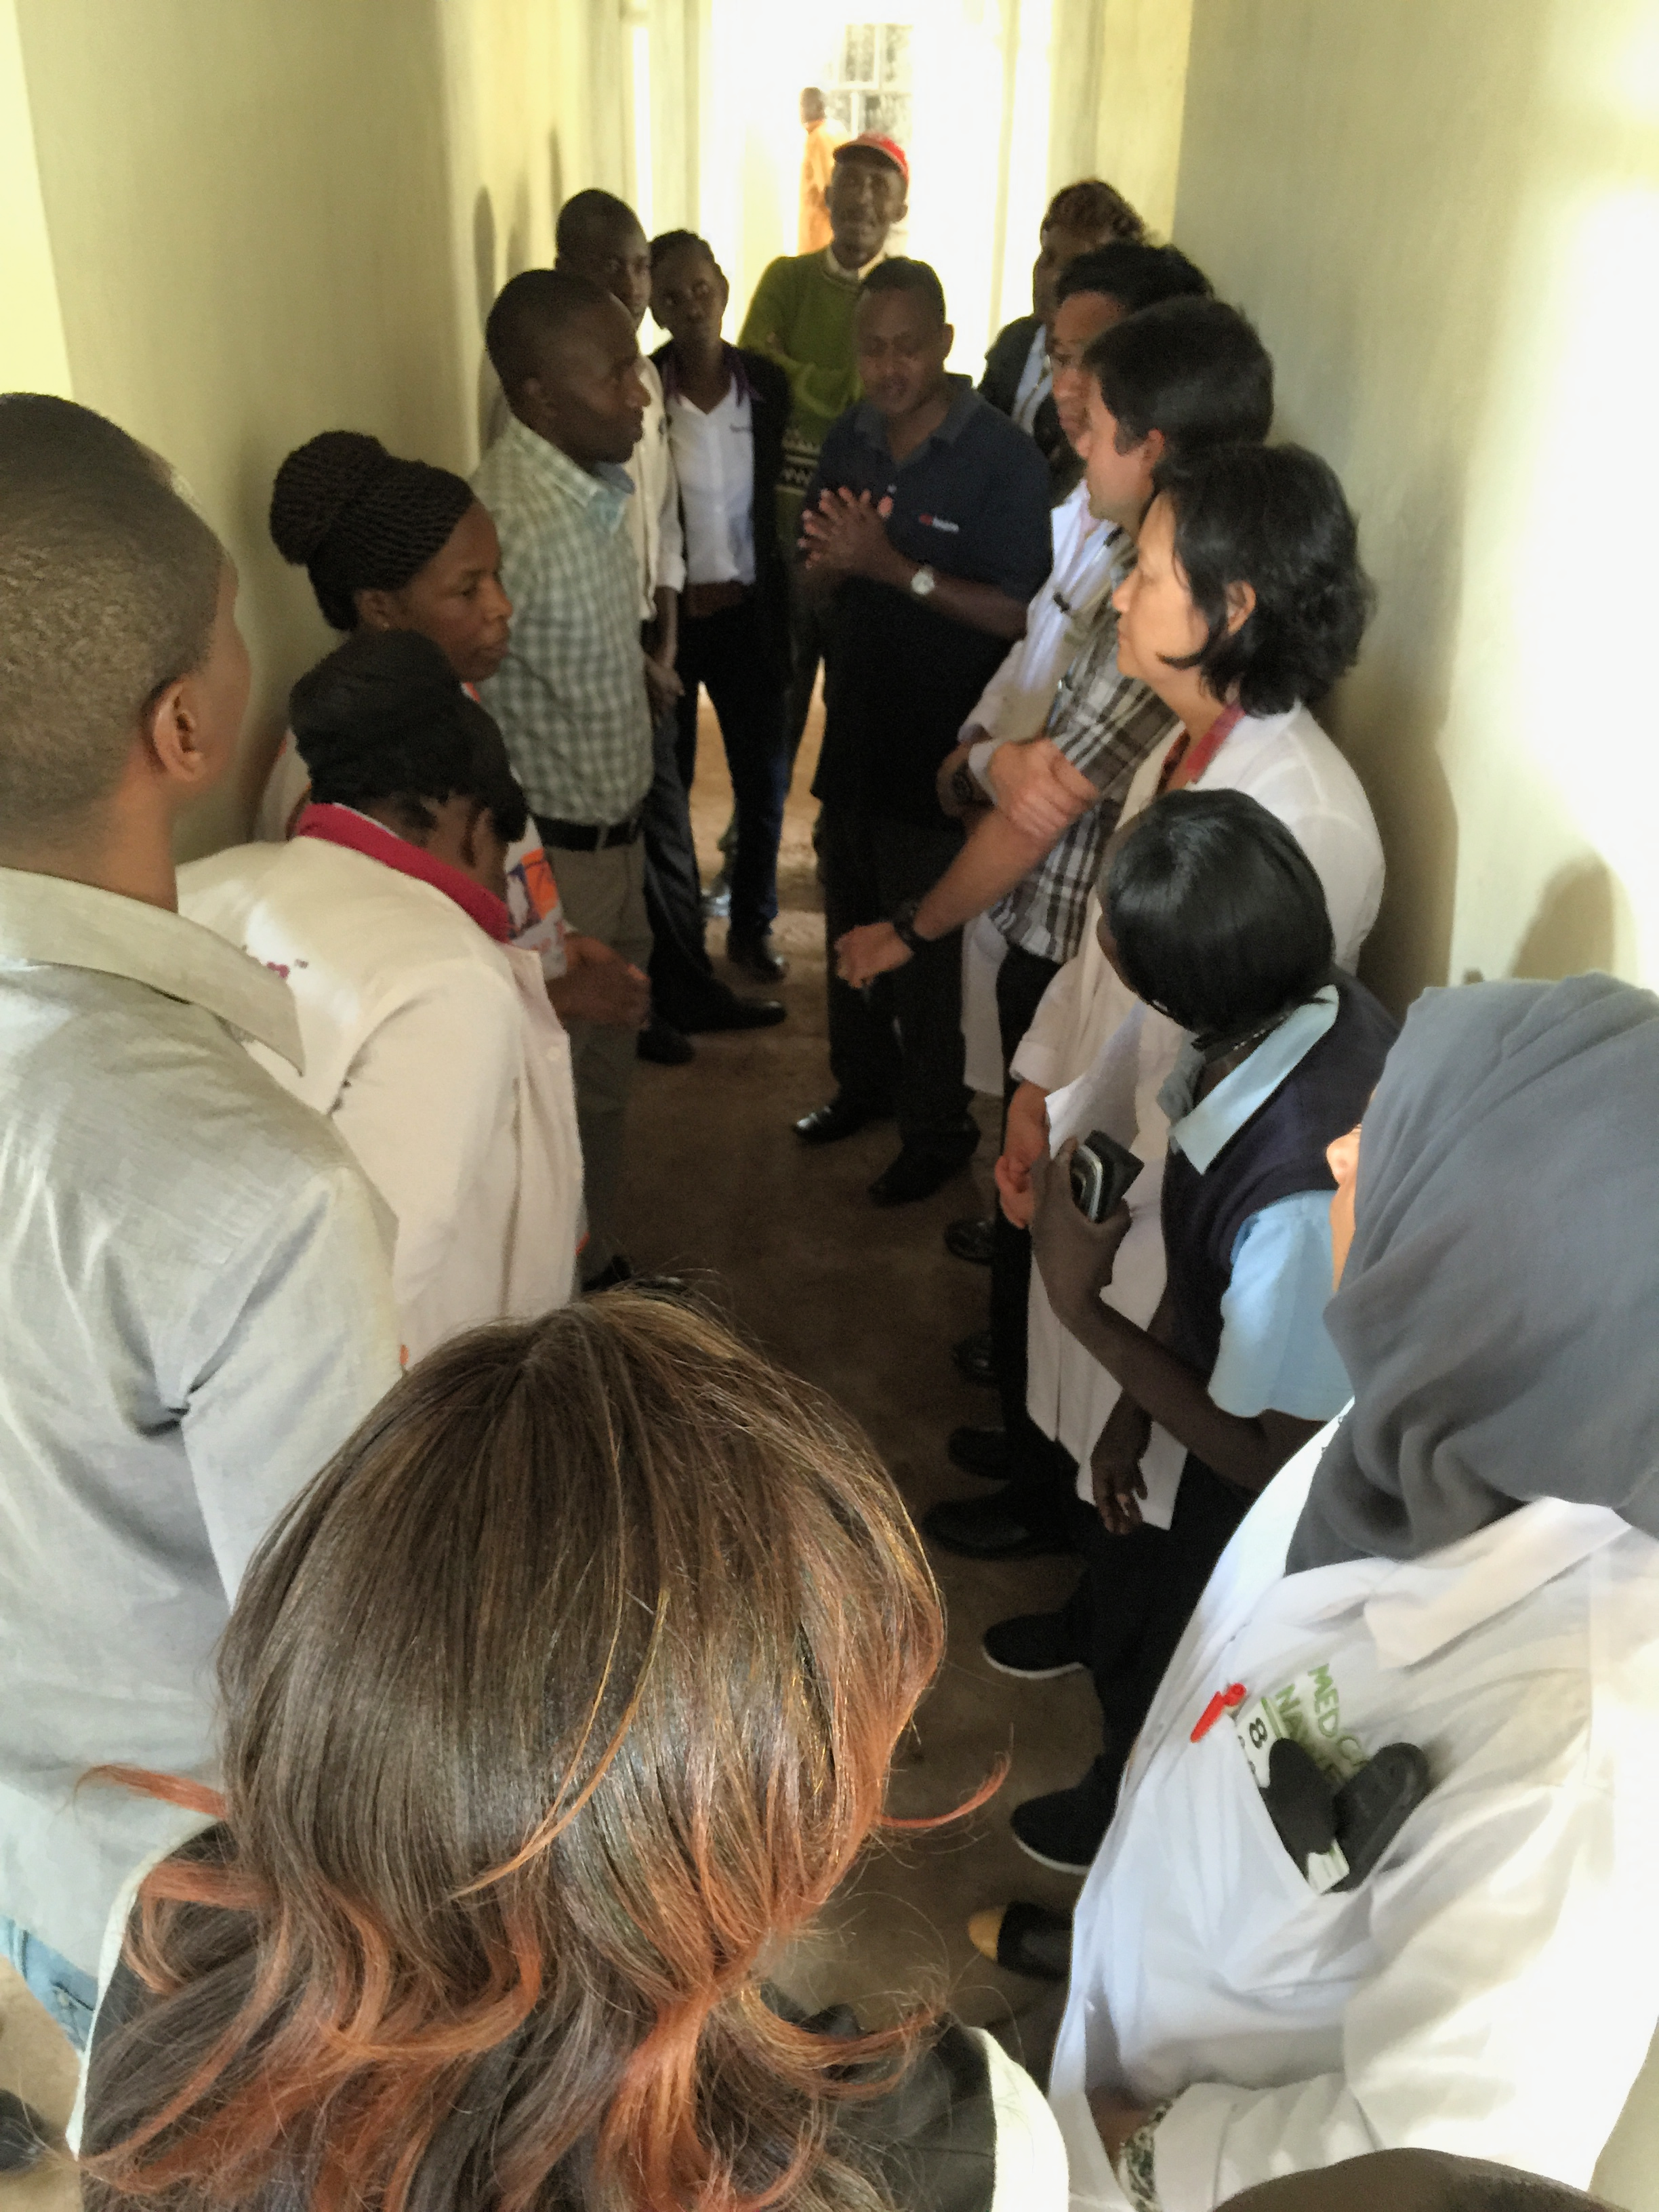 A meeting of the Medcan Naweza staff to discuss crowd control. There will be over 300 visits today and managing the queues will be a logistical challenge.